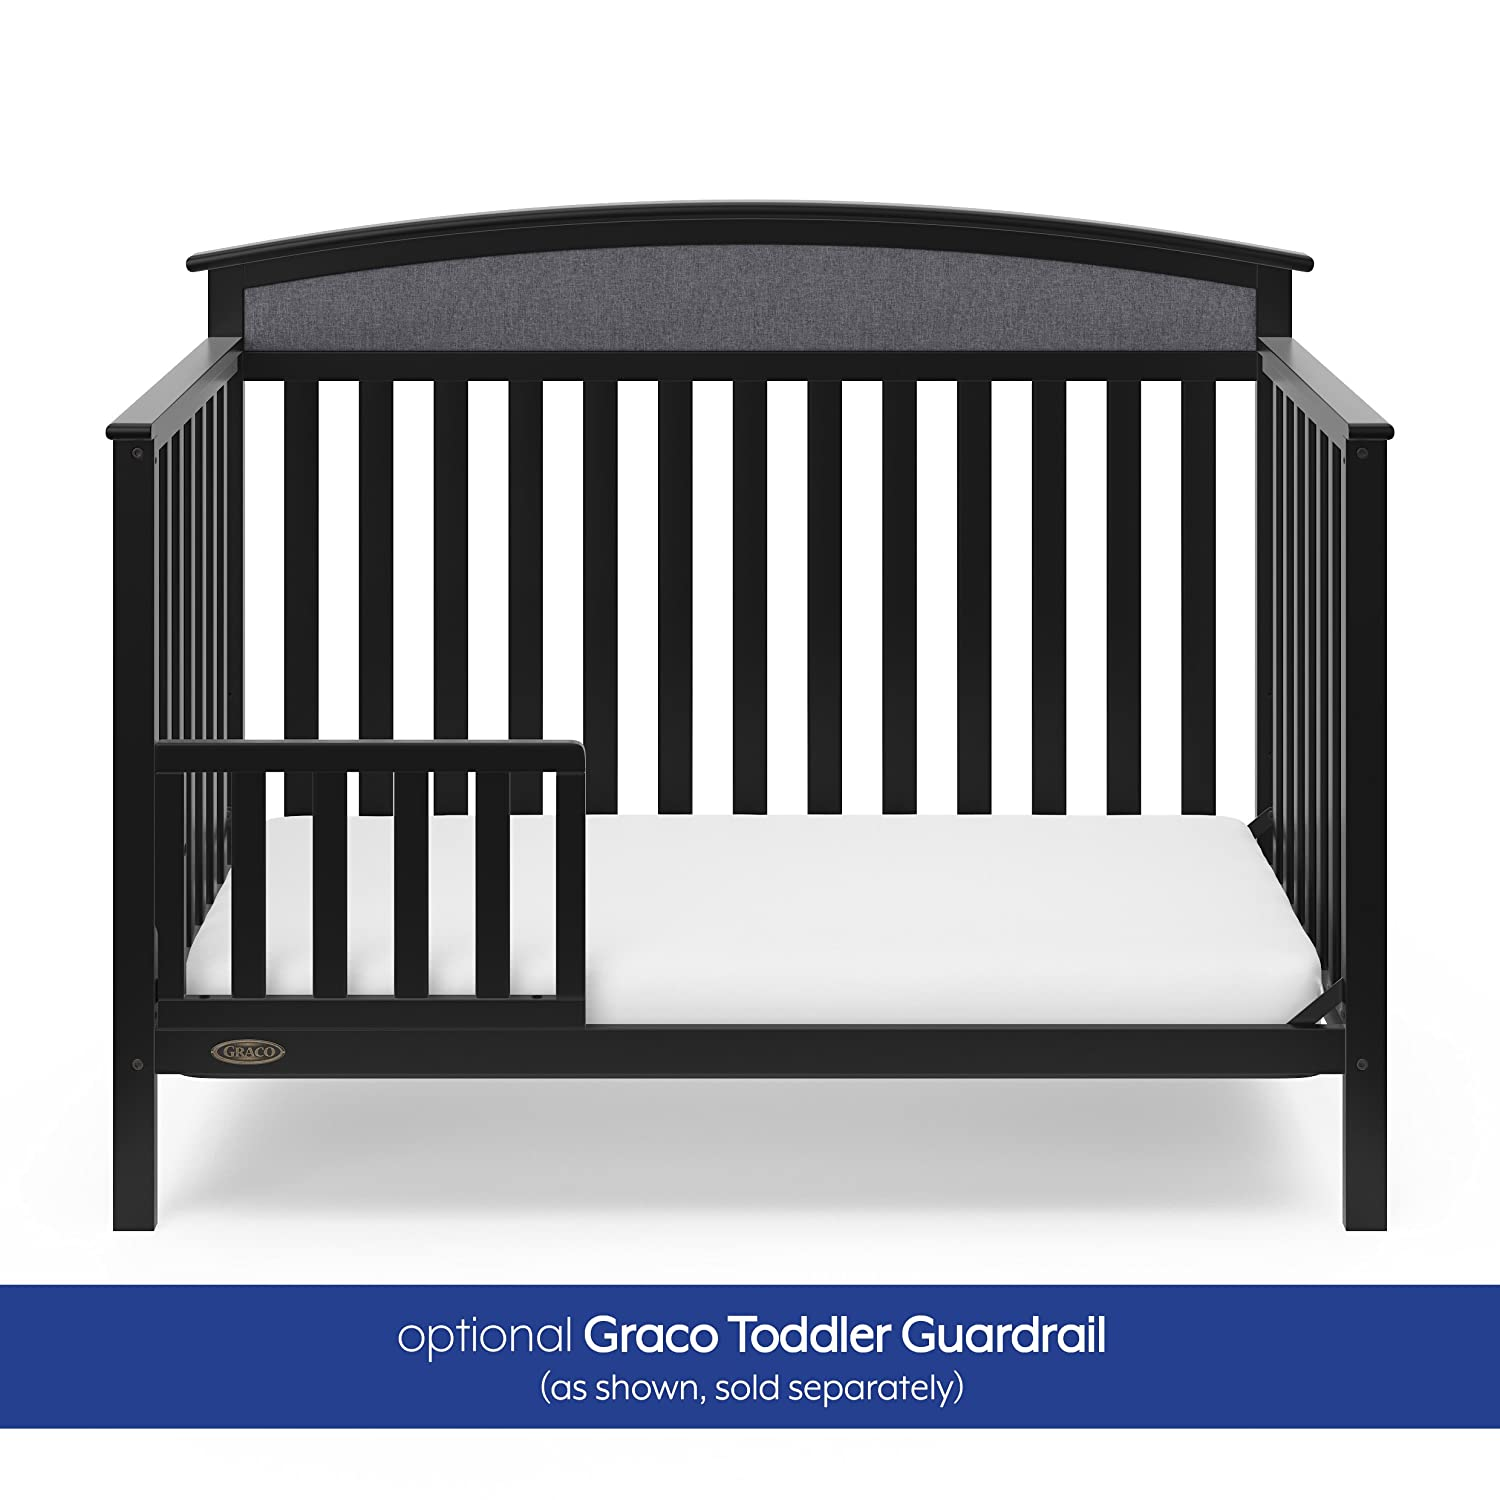 Graco Toddler Guardrail White